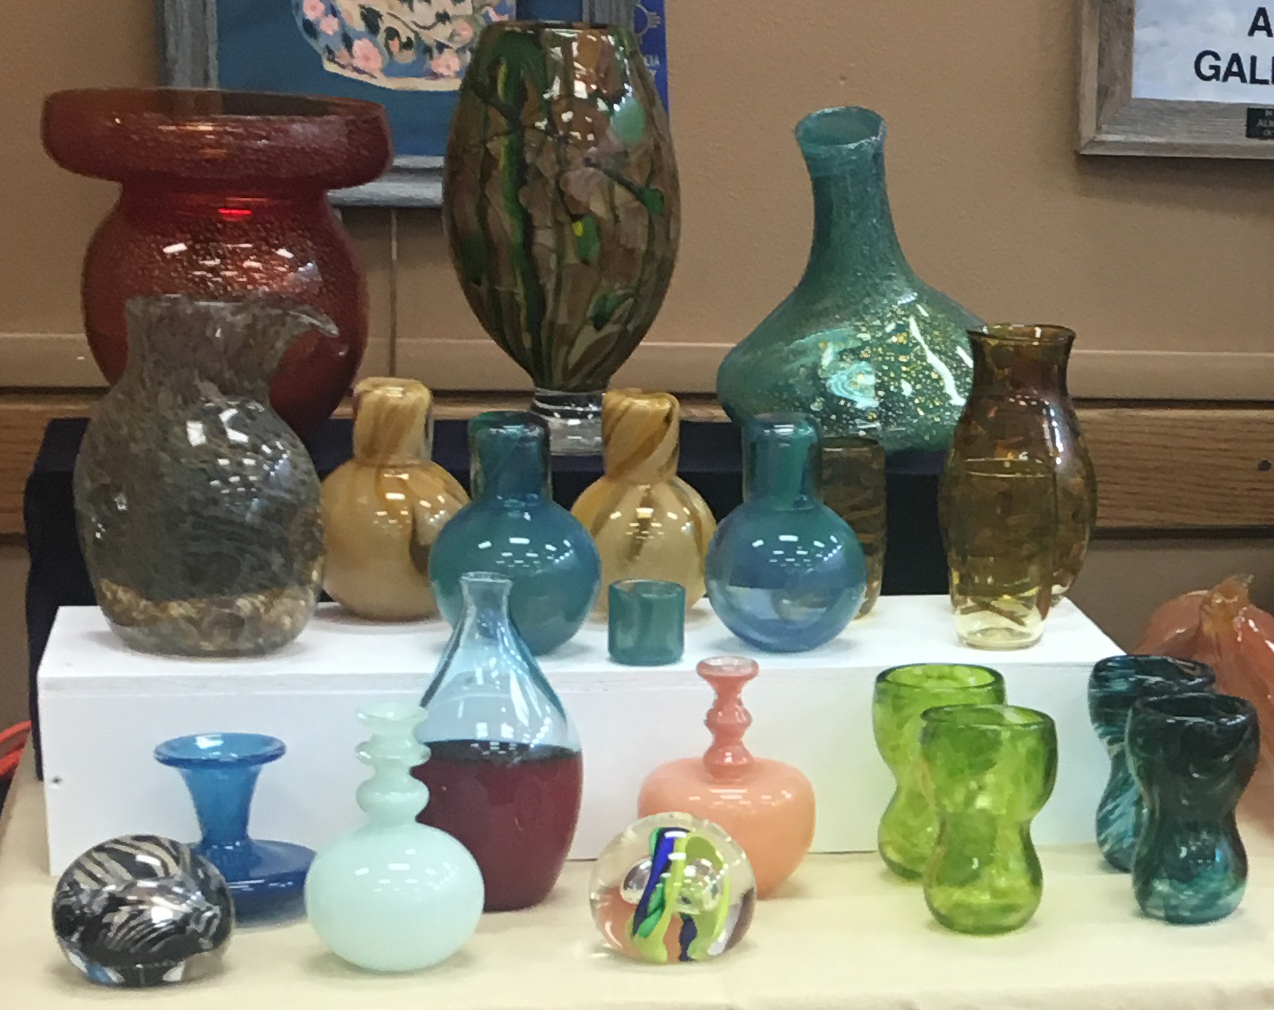 Glasses, vases, paper weights, wine decanter